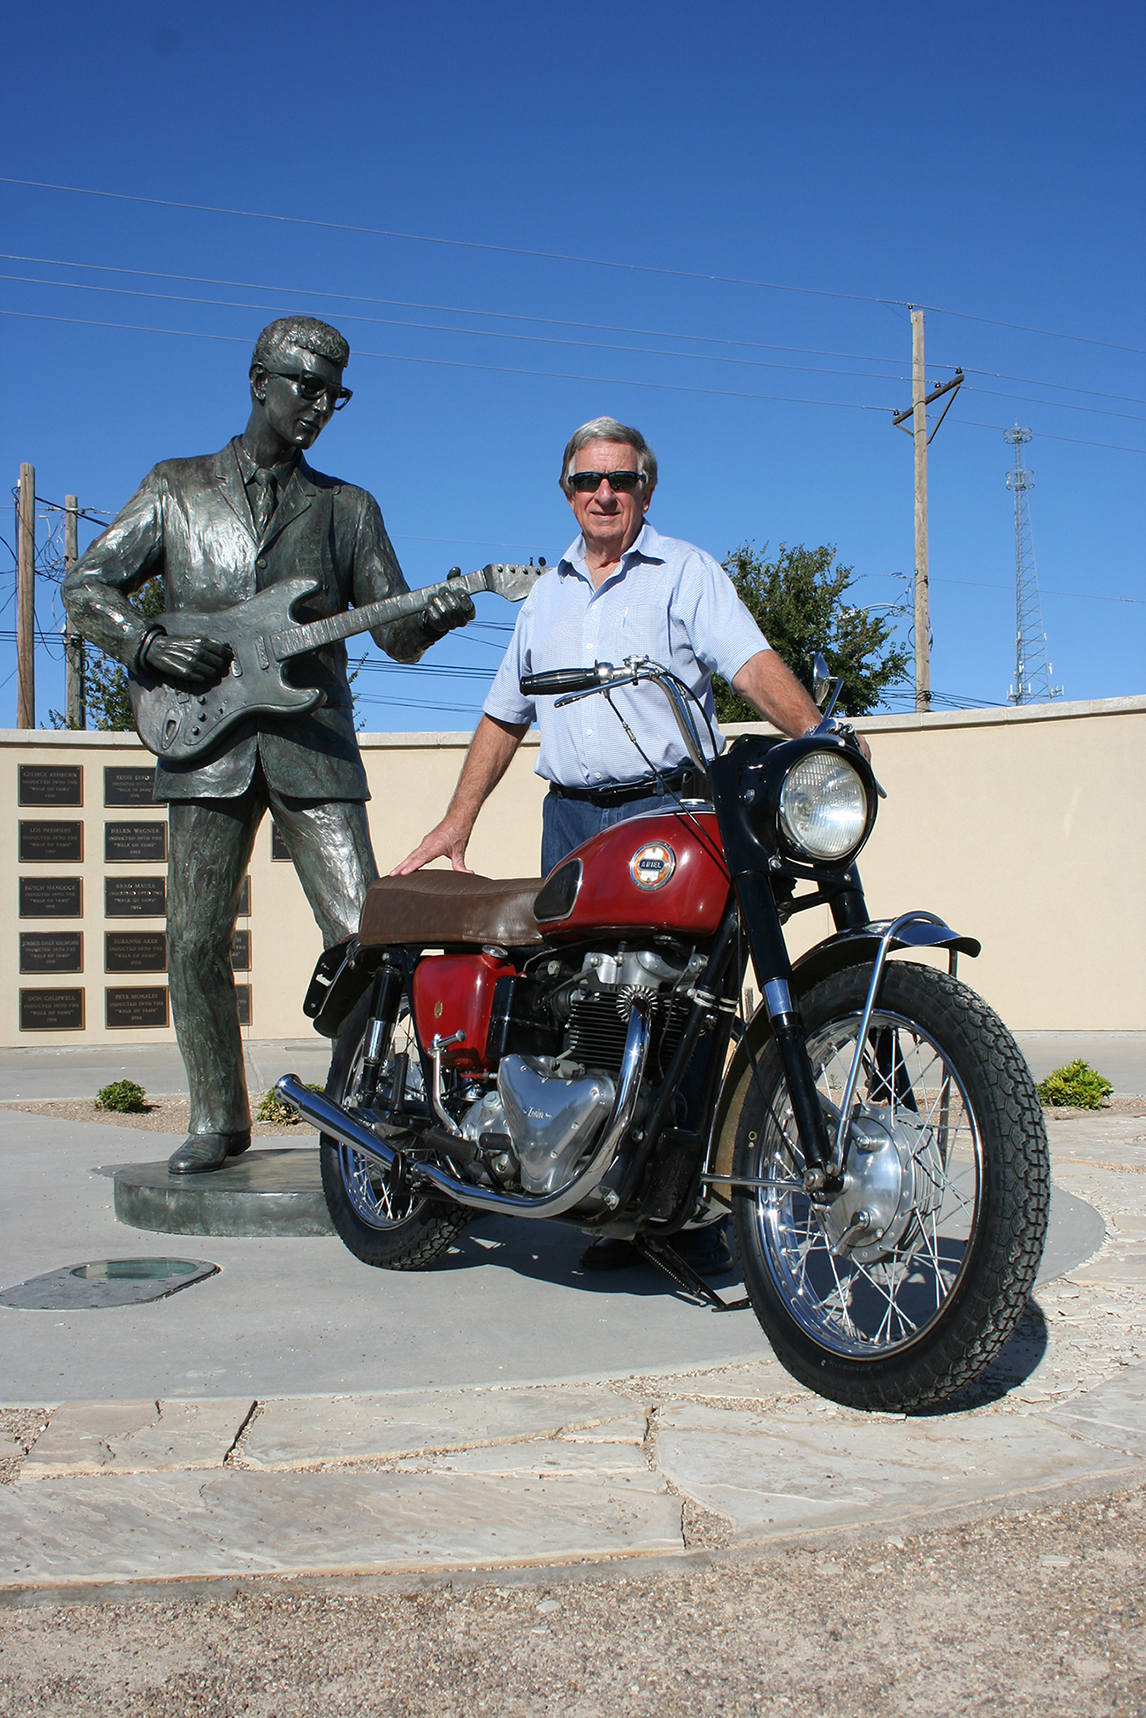 buddy holly the legend and lore of lubbock s native son ride buddy george and the ariel lubbock s george mcmahan waited more than five decades to bring buddy holly s iconic ariel cyclone home to lubbock